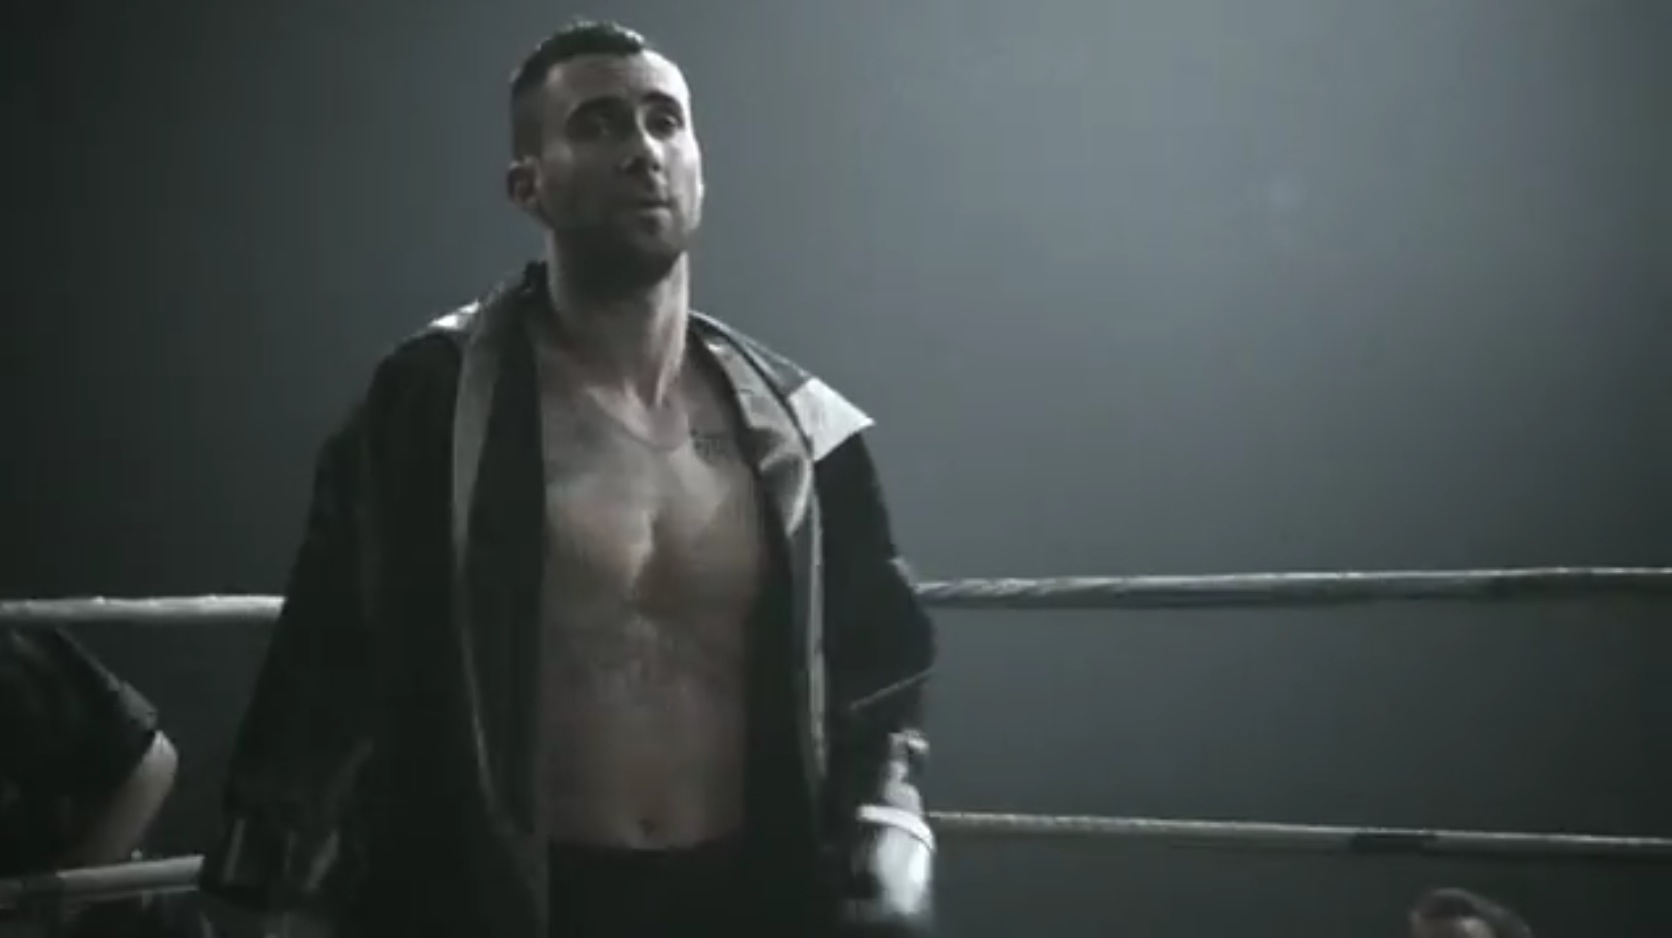 Adam Levine boxing in 'One More Night' video